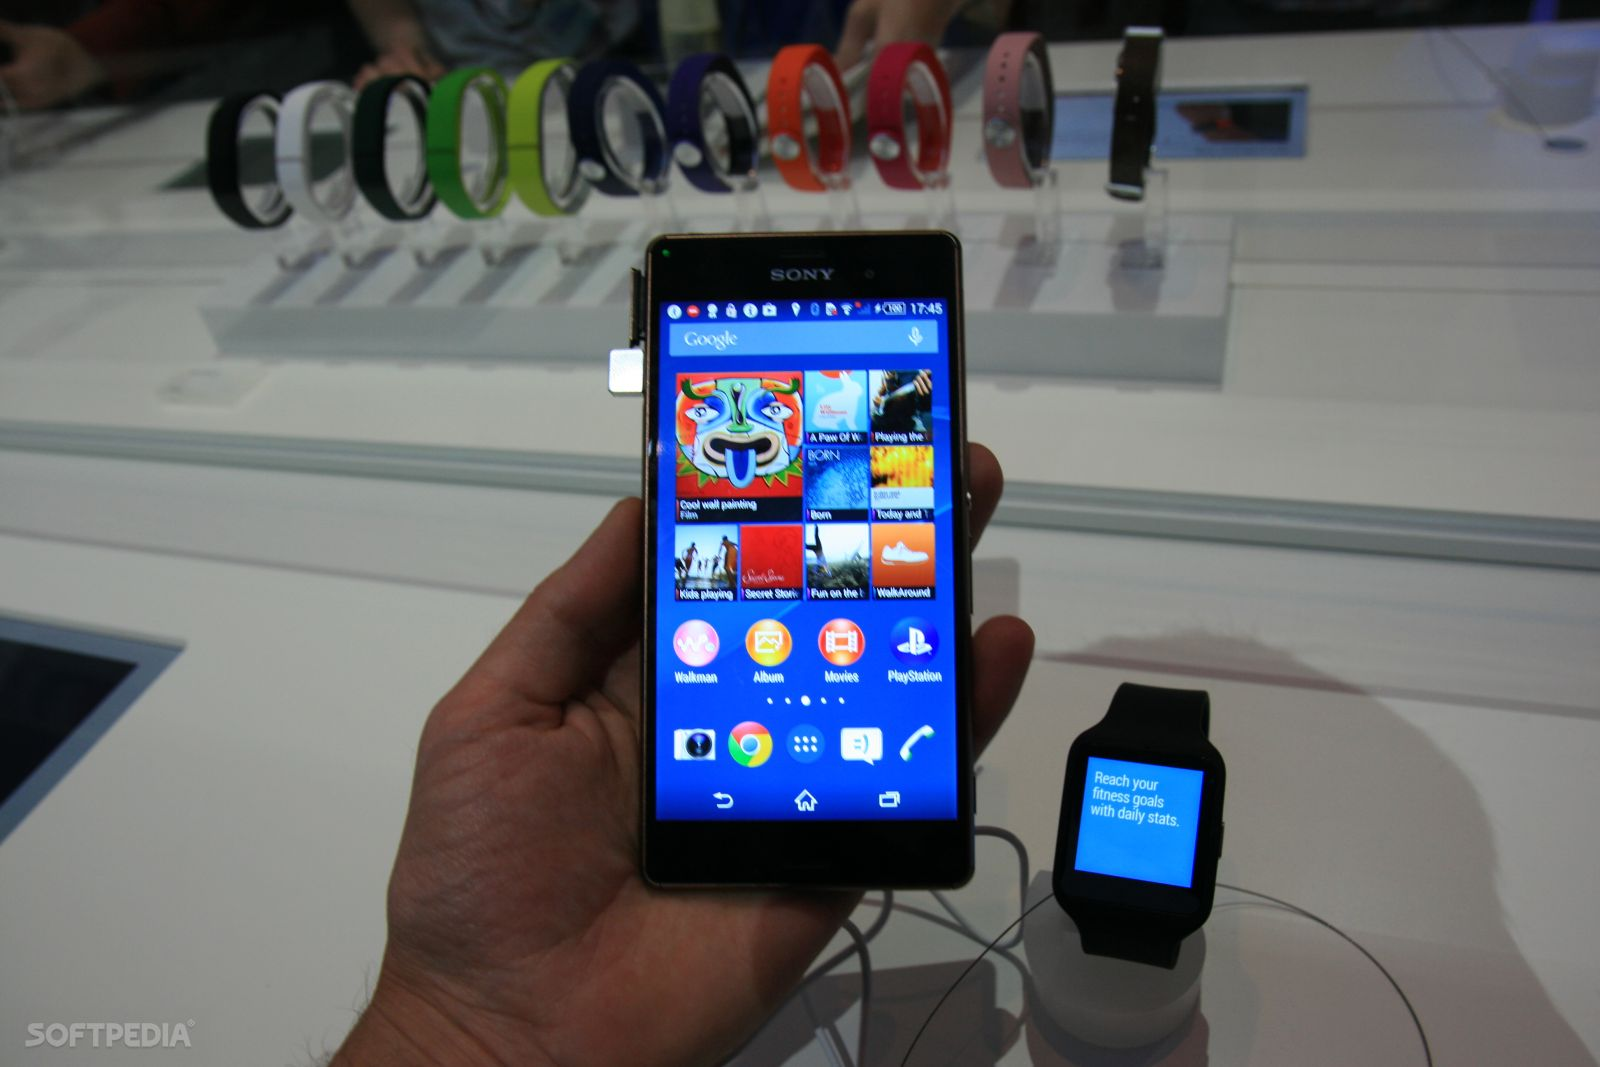 IFA 2014: Sony Xperia Z3 and Xperia Z3 Compact Hands-On